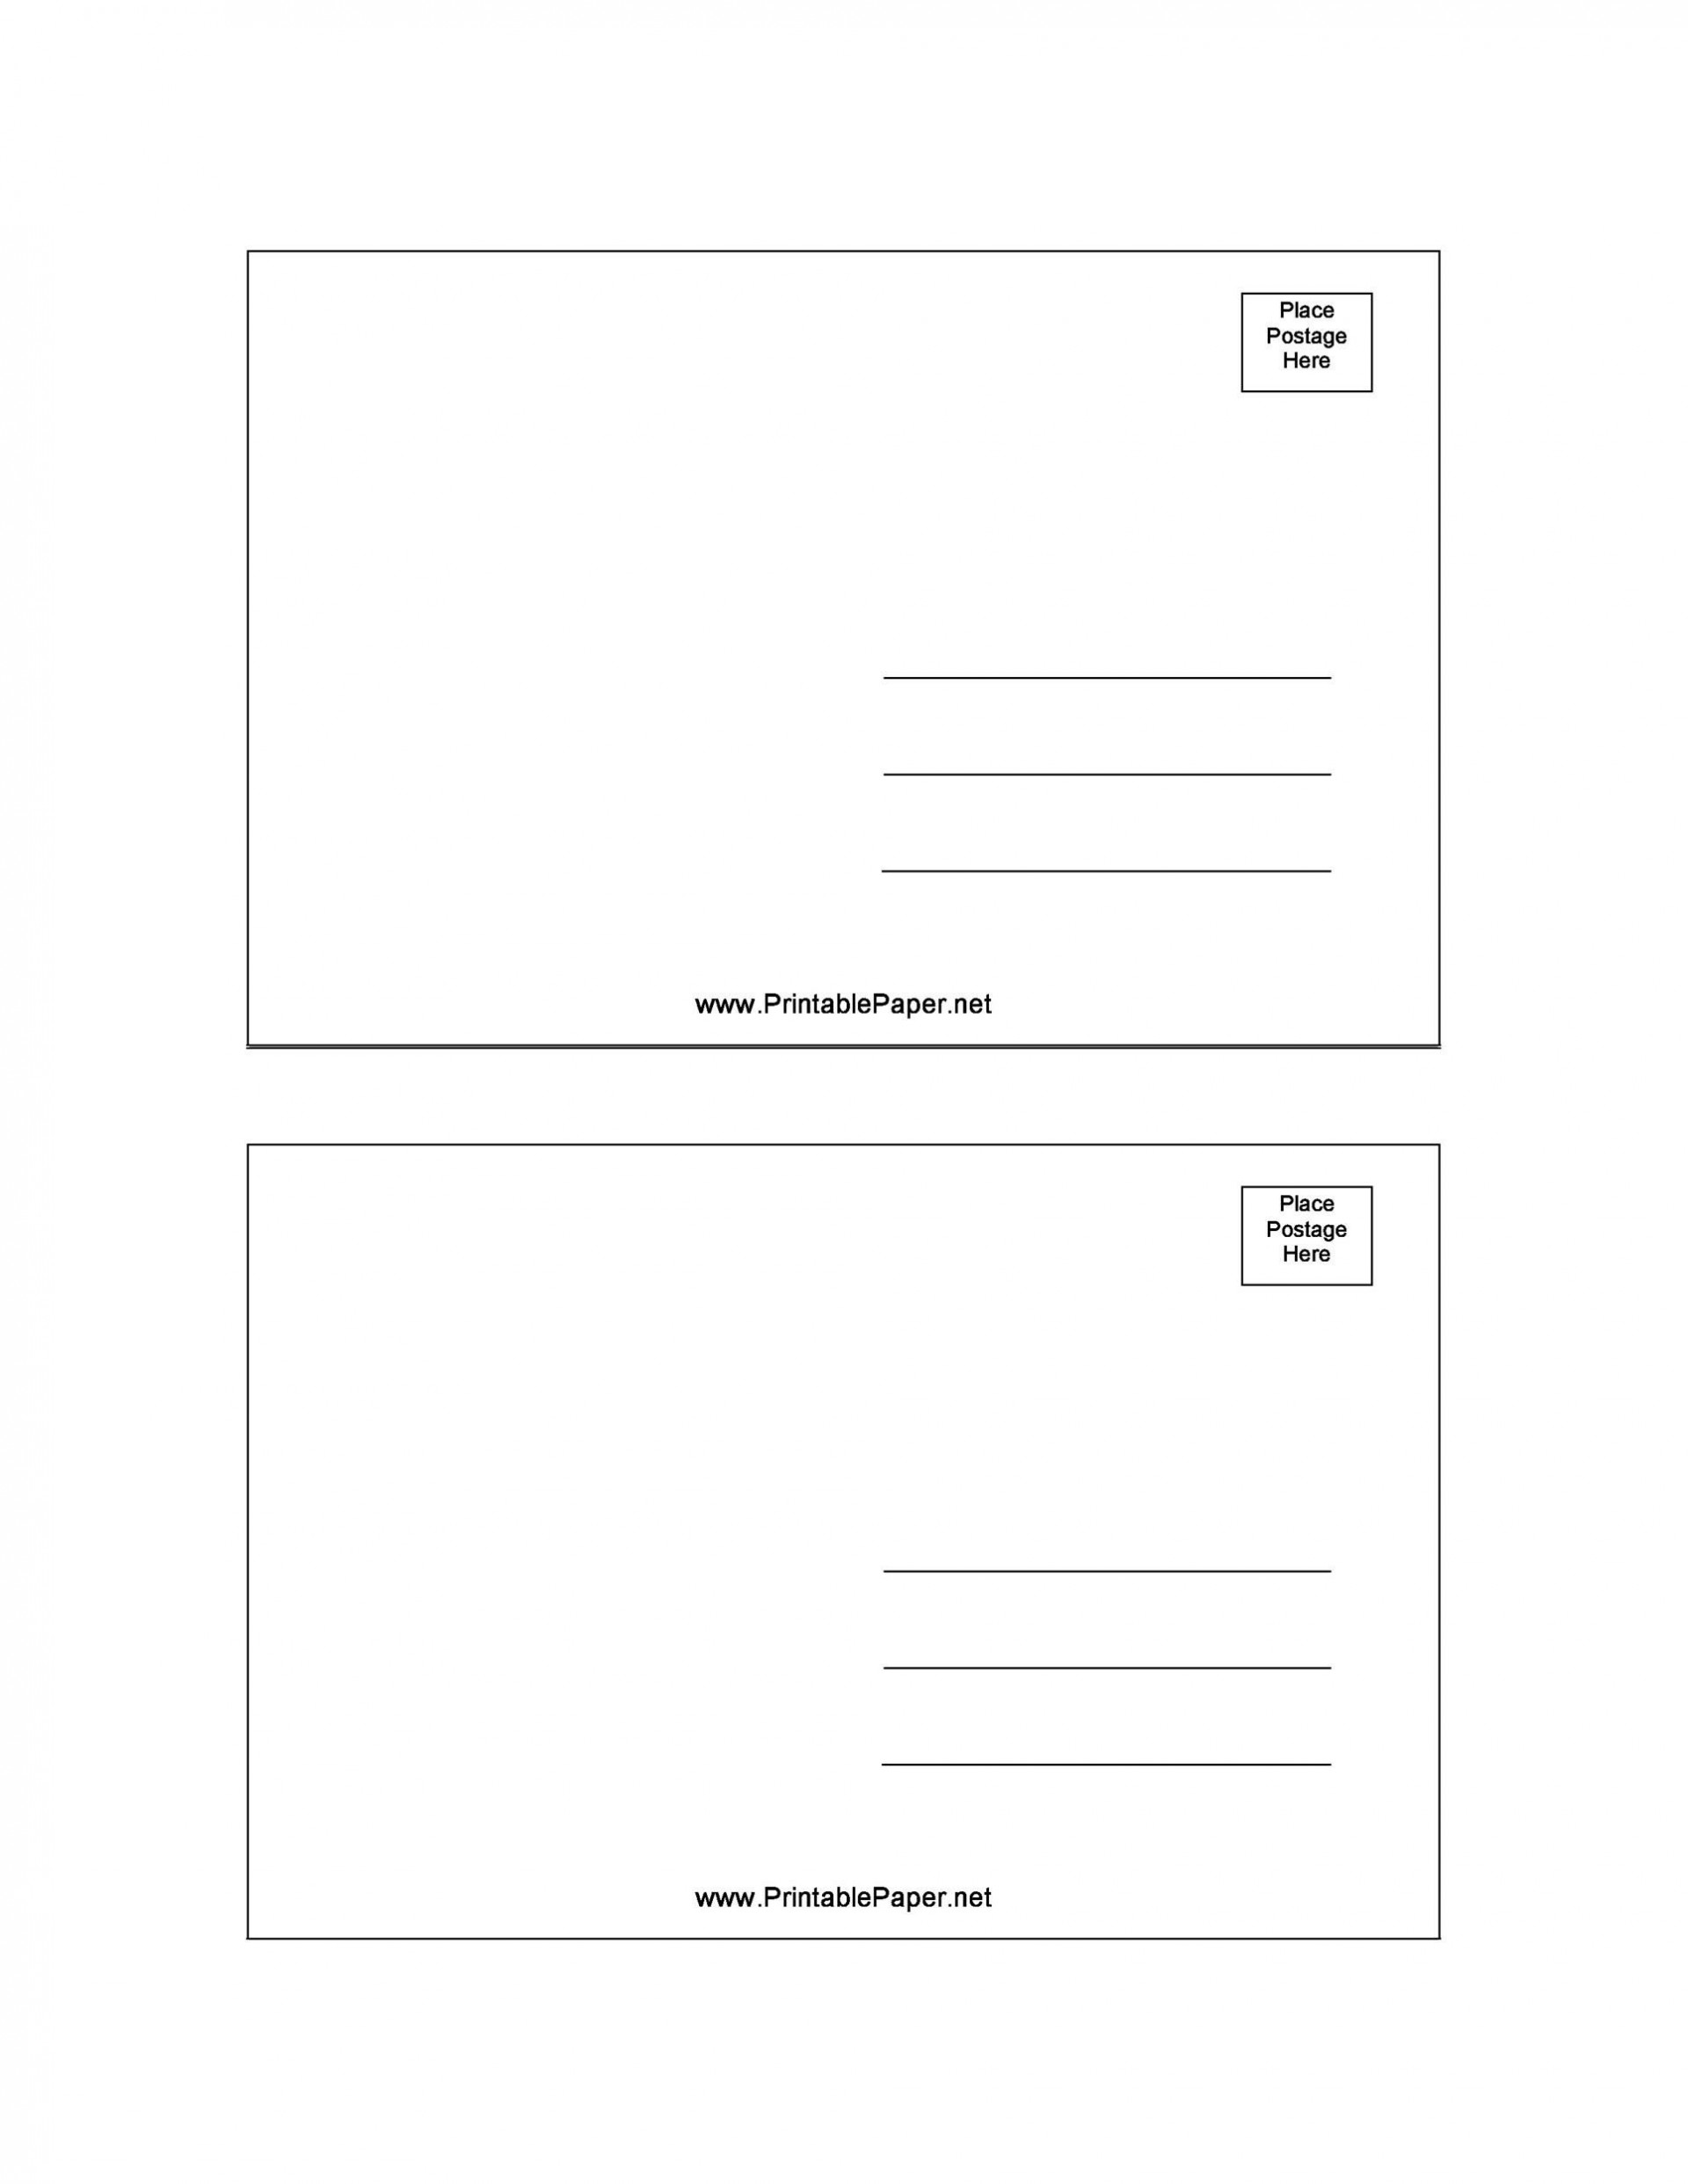 009 Top Free Blank Postcard Template For Word Example  Printable Microsoft1920